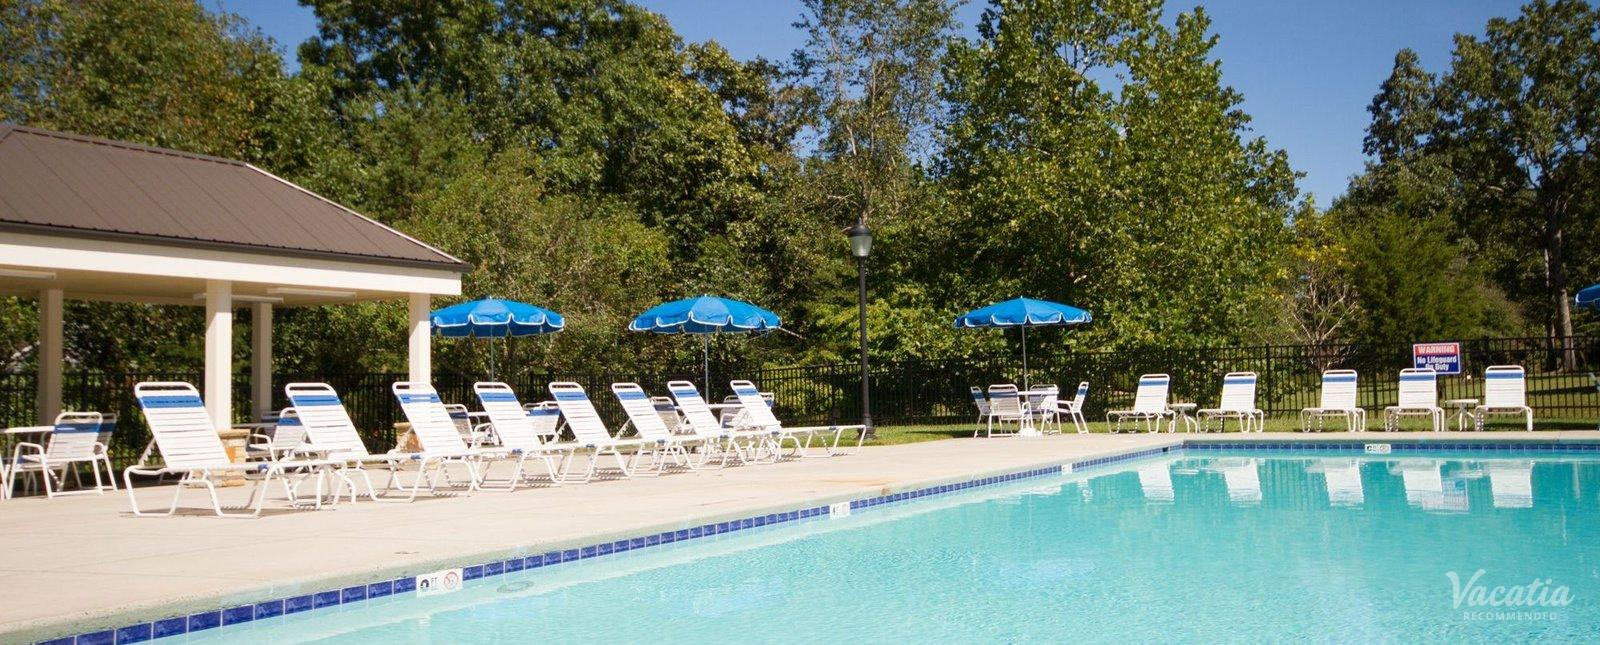 Wyndham Resort at Fairfield Glade Pools